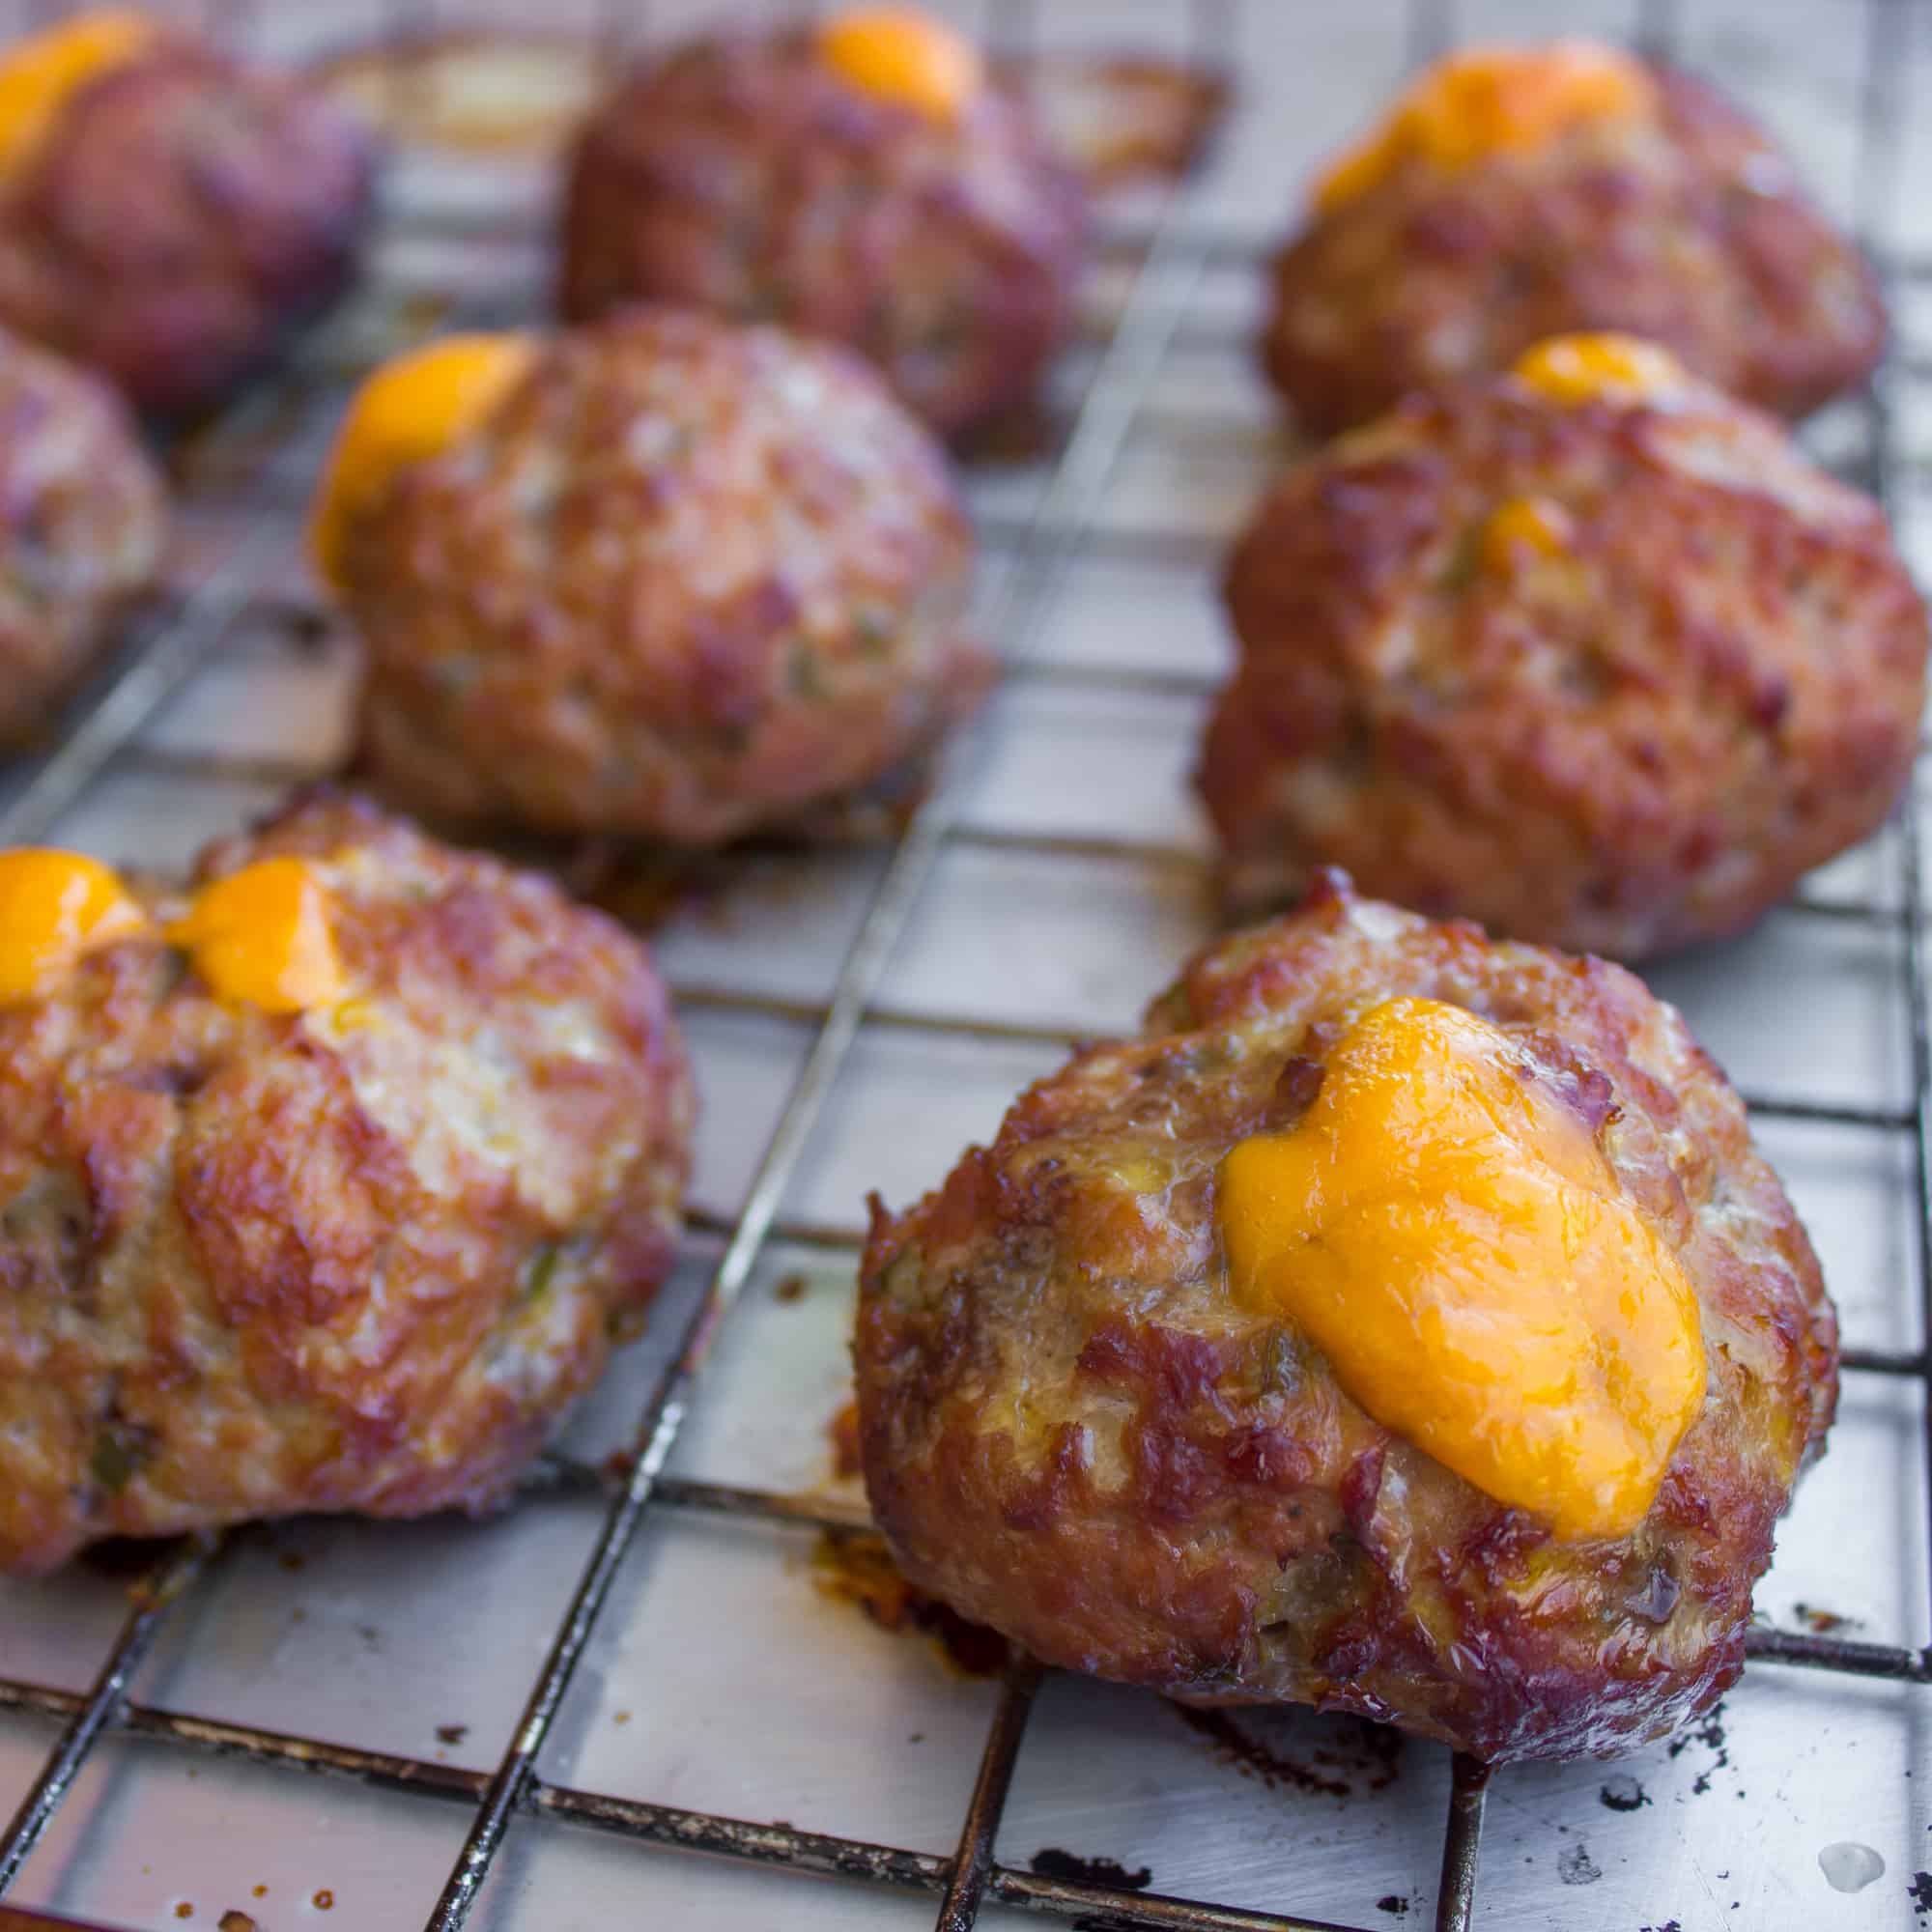 These pork meatballs are stuffed with cheddar cheese and jalapeno peppers and smoked in a Bradley smoker. Delicious, cheesy and a little spicy too!